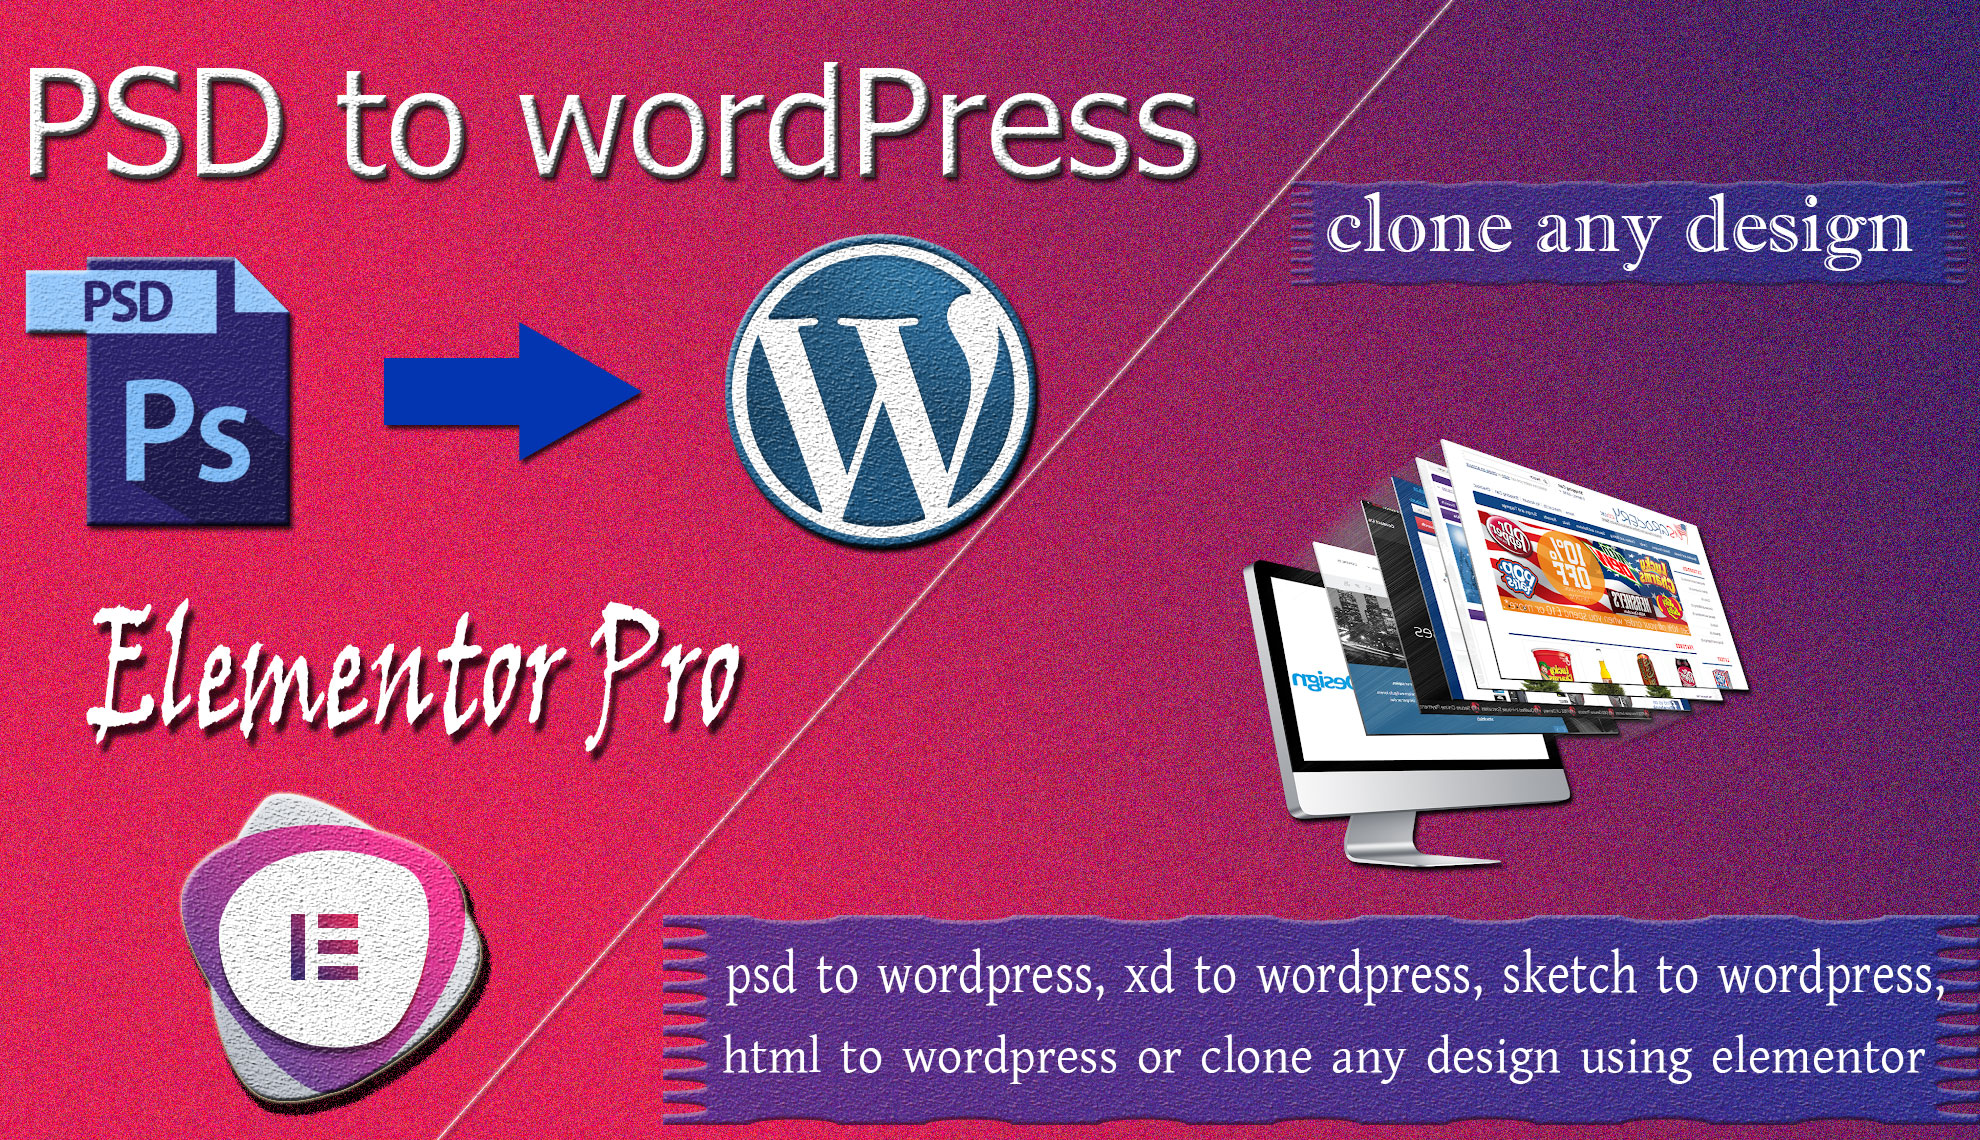 I will convert psd to wordpress or any landing page responsive website using elementor pro